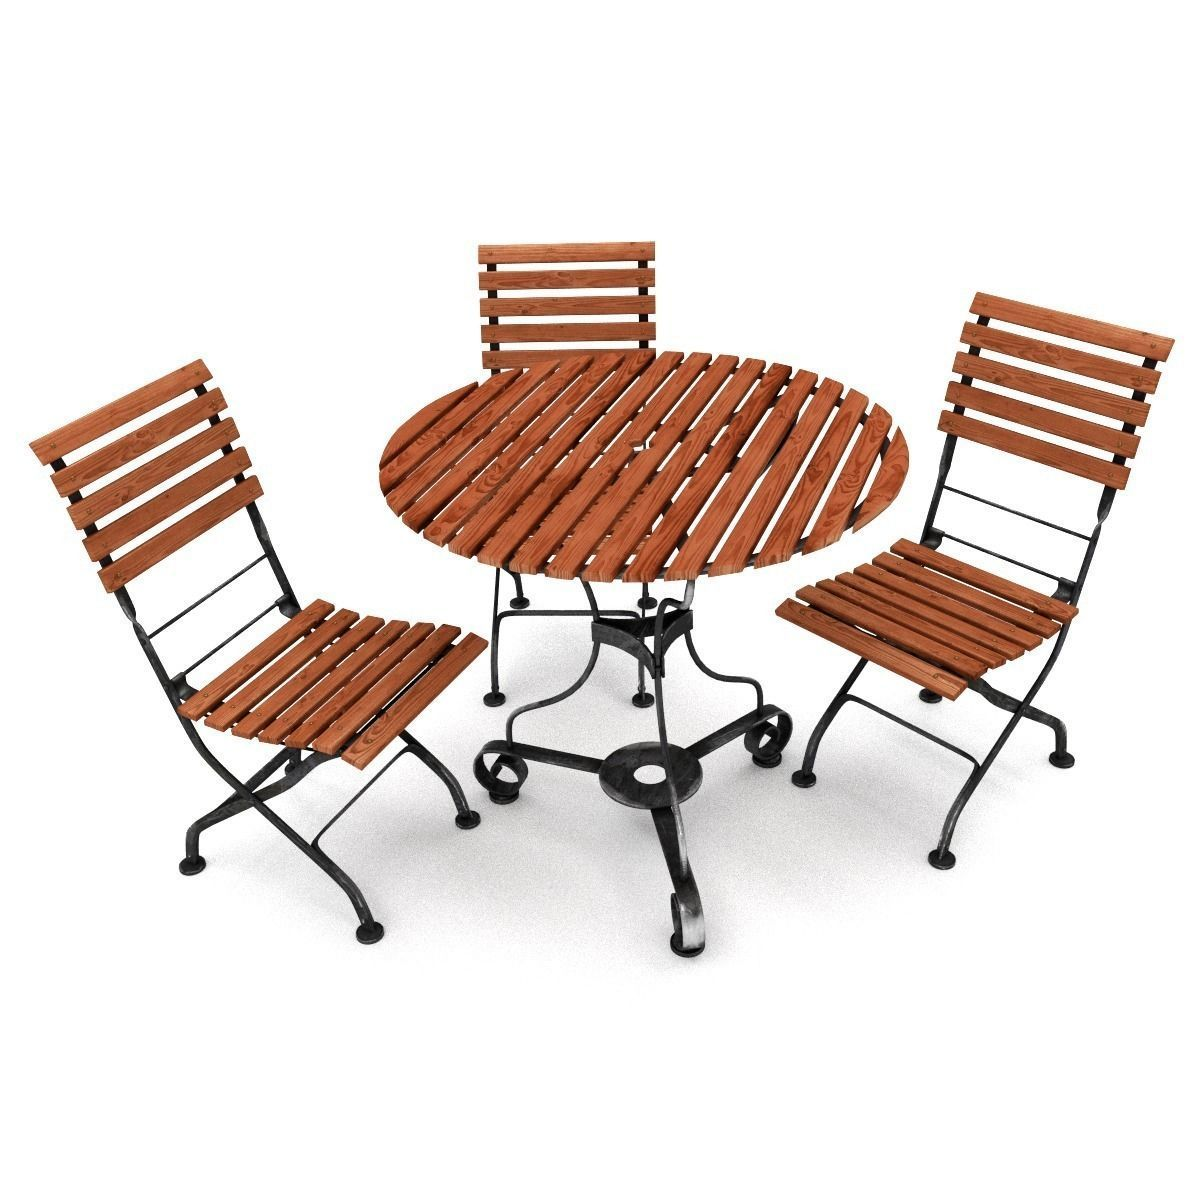 garden furniture set 3d model obj fbx blend 1 - Garden Furniture 3d Model